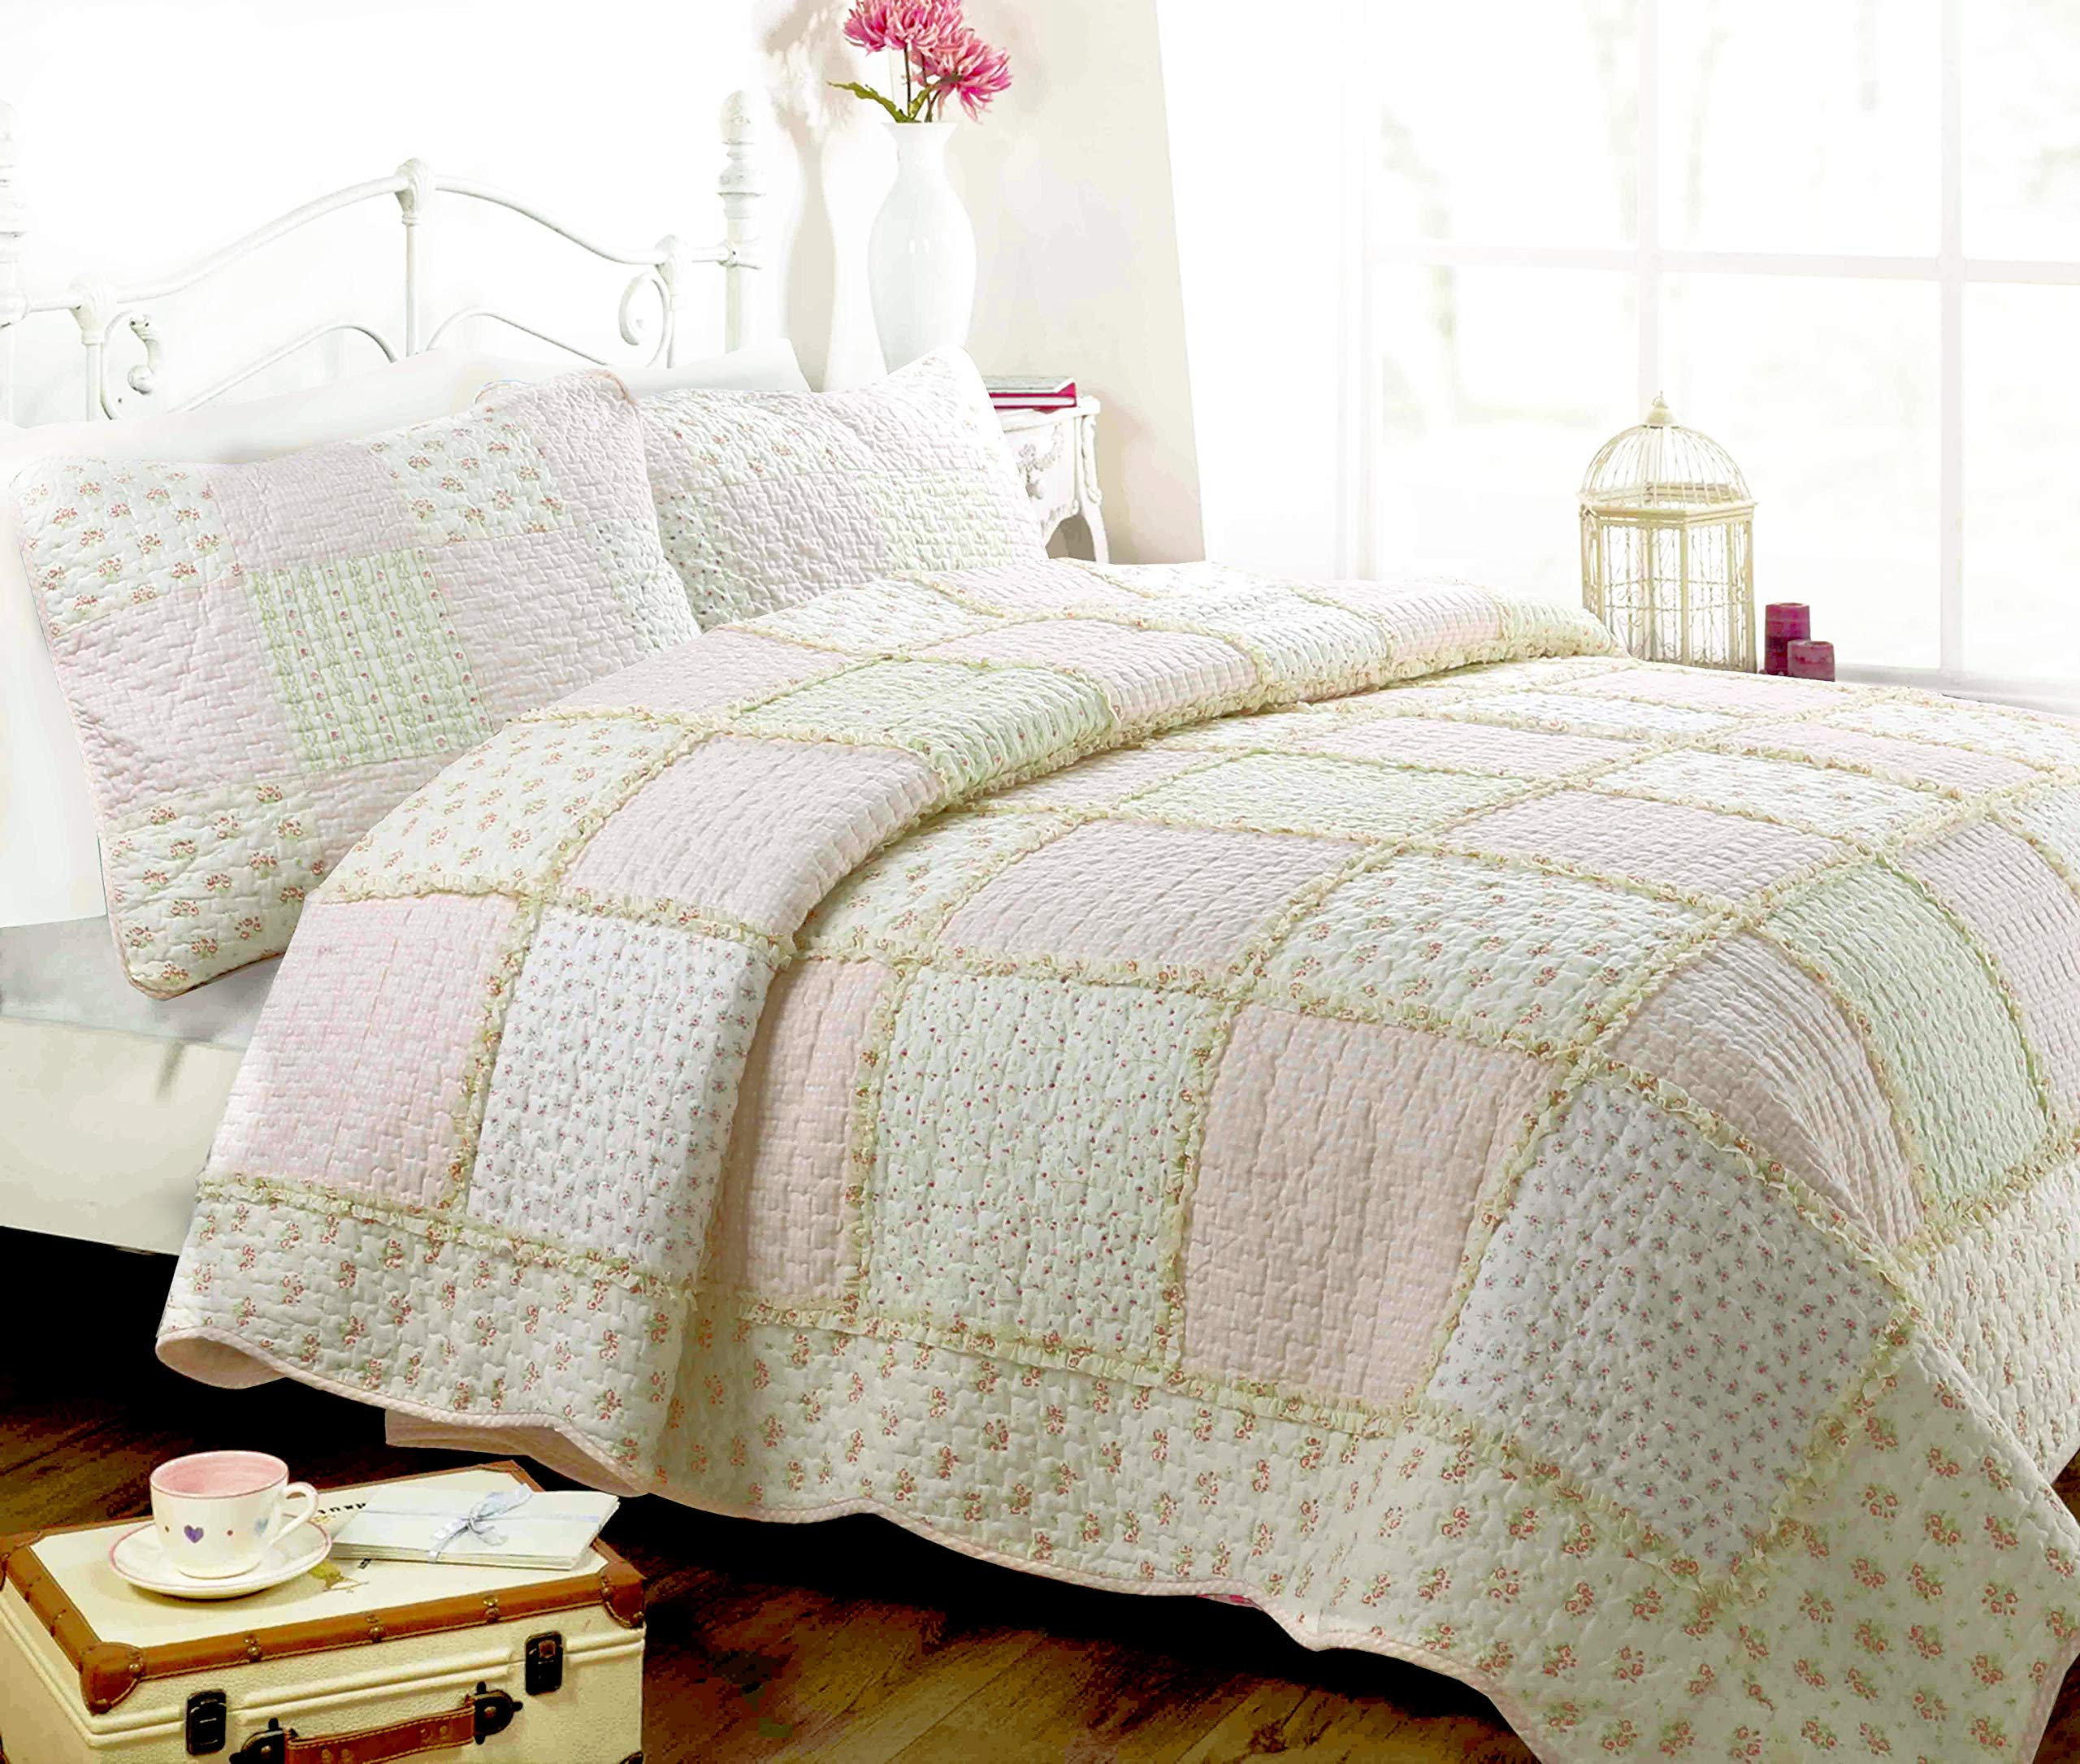 Cozy Line Home Fashions Sweet Peach Floral Light Pink Printed 3D Real Patchwork 100% Cotton Quilt Bedding Set, Reversible Coverlet Bedspread for Her Girl Women (Peach, Full/Queen - 3 Piece) by Cozy Line Home Fashions